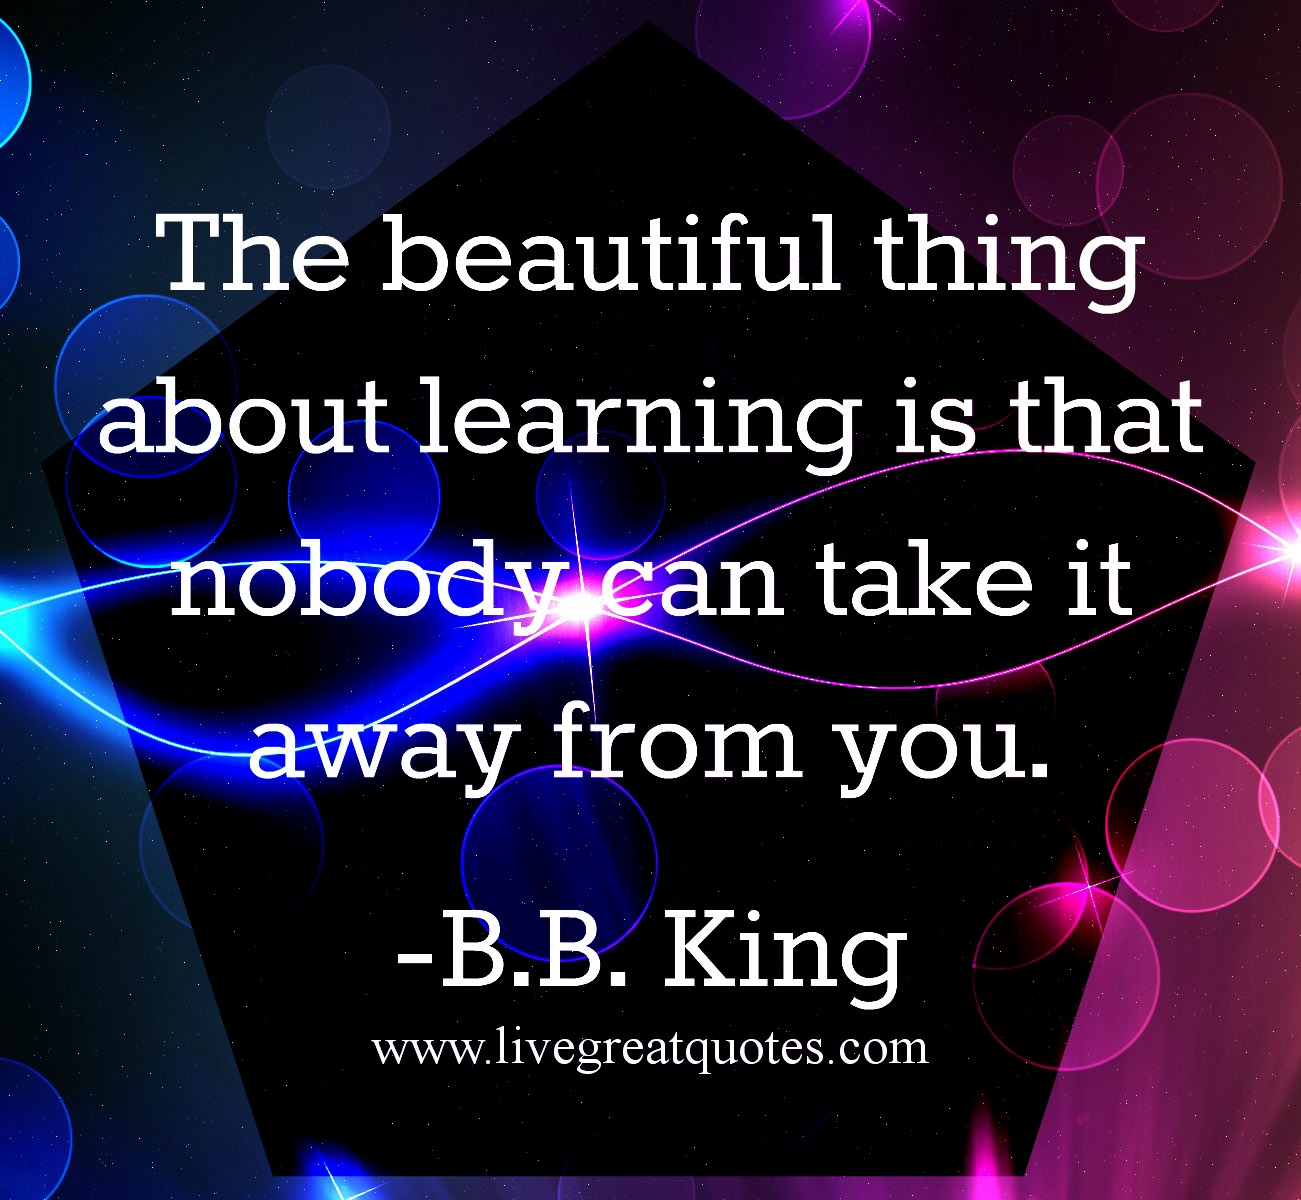 A good thing about learning